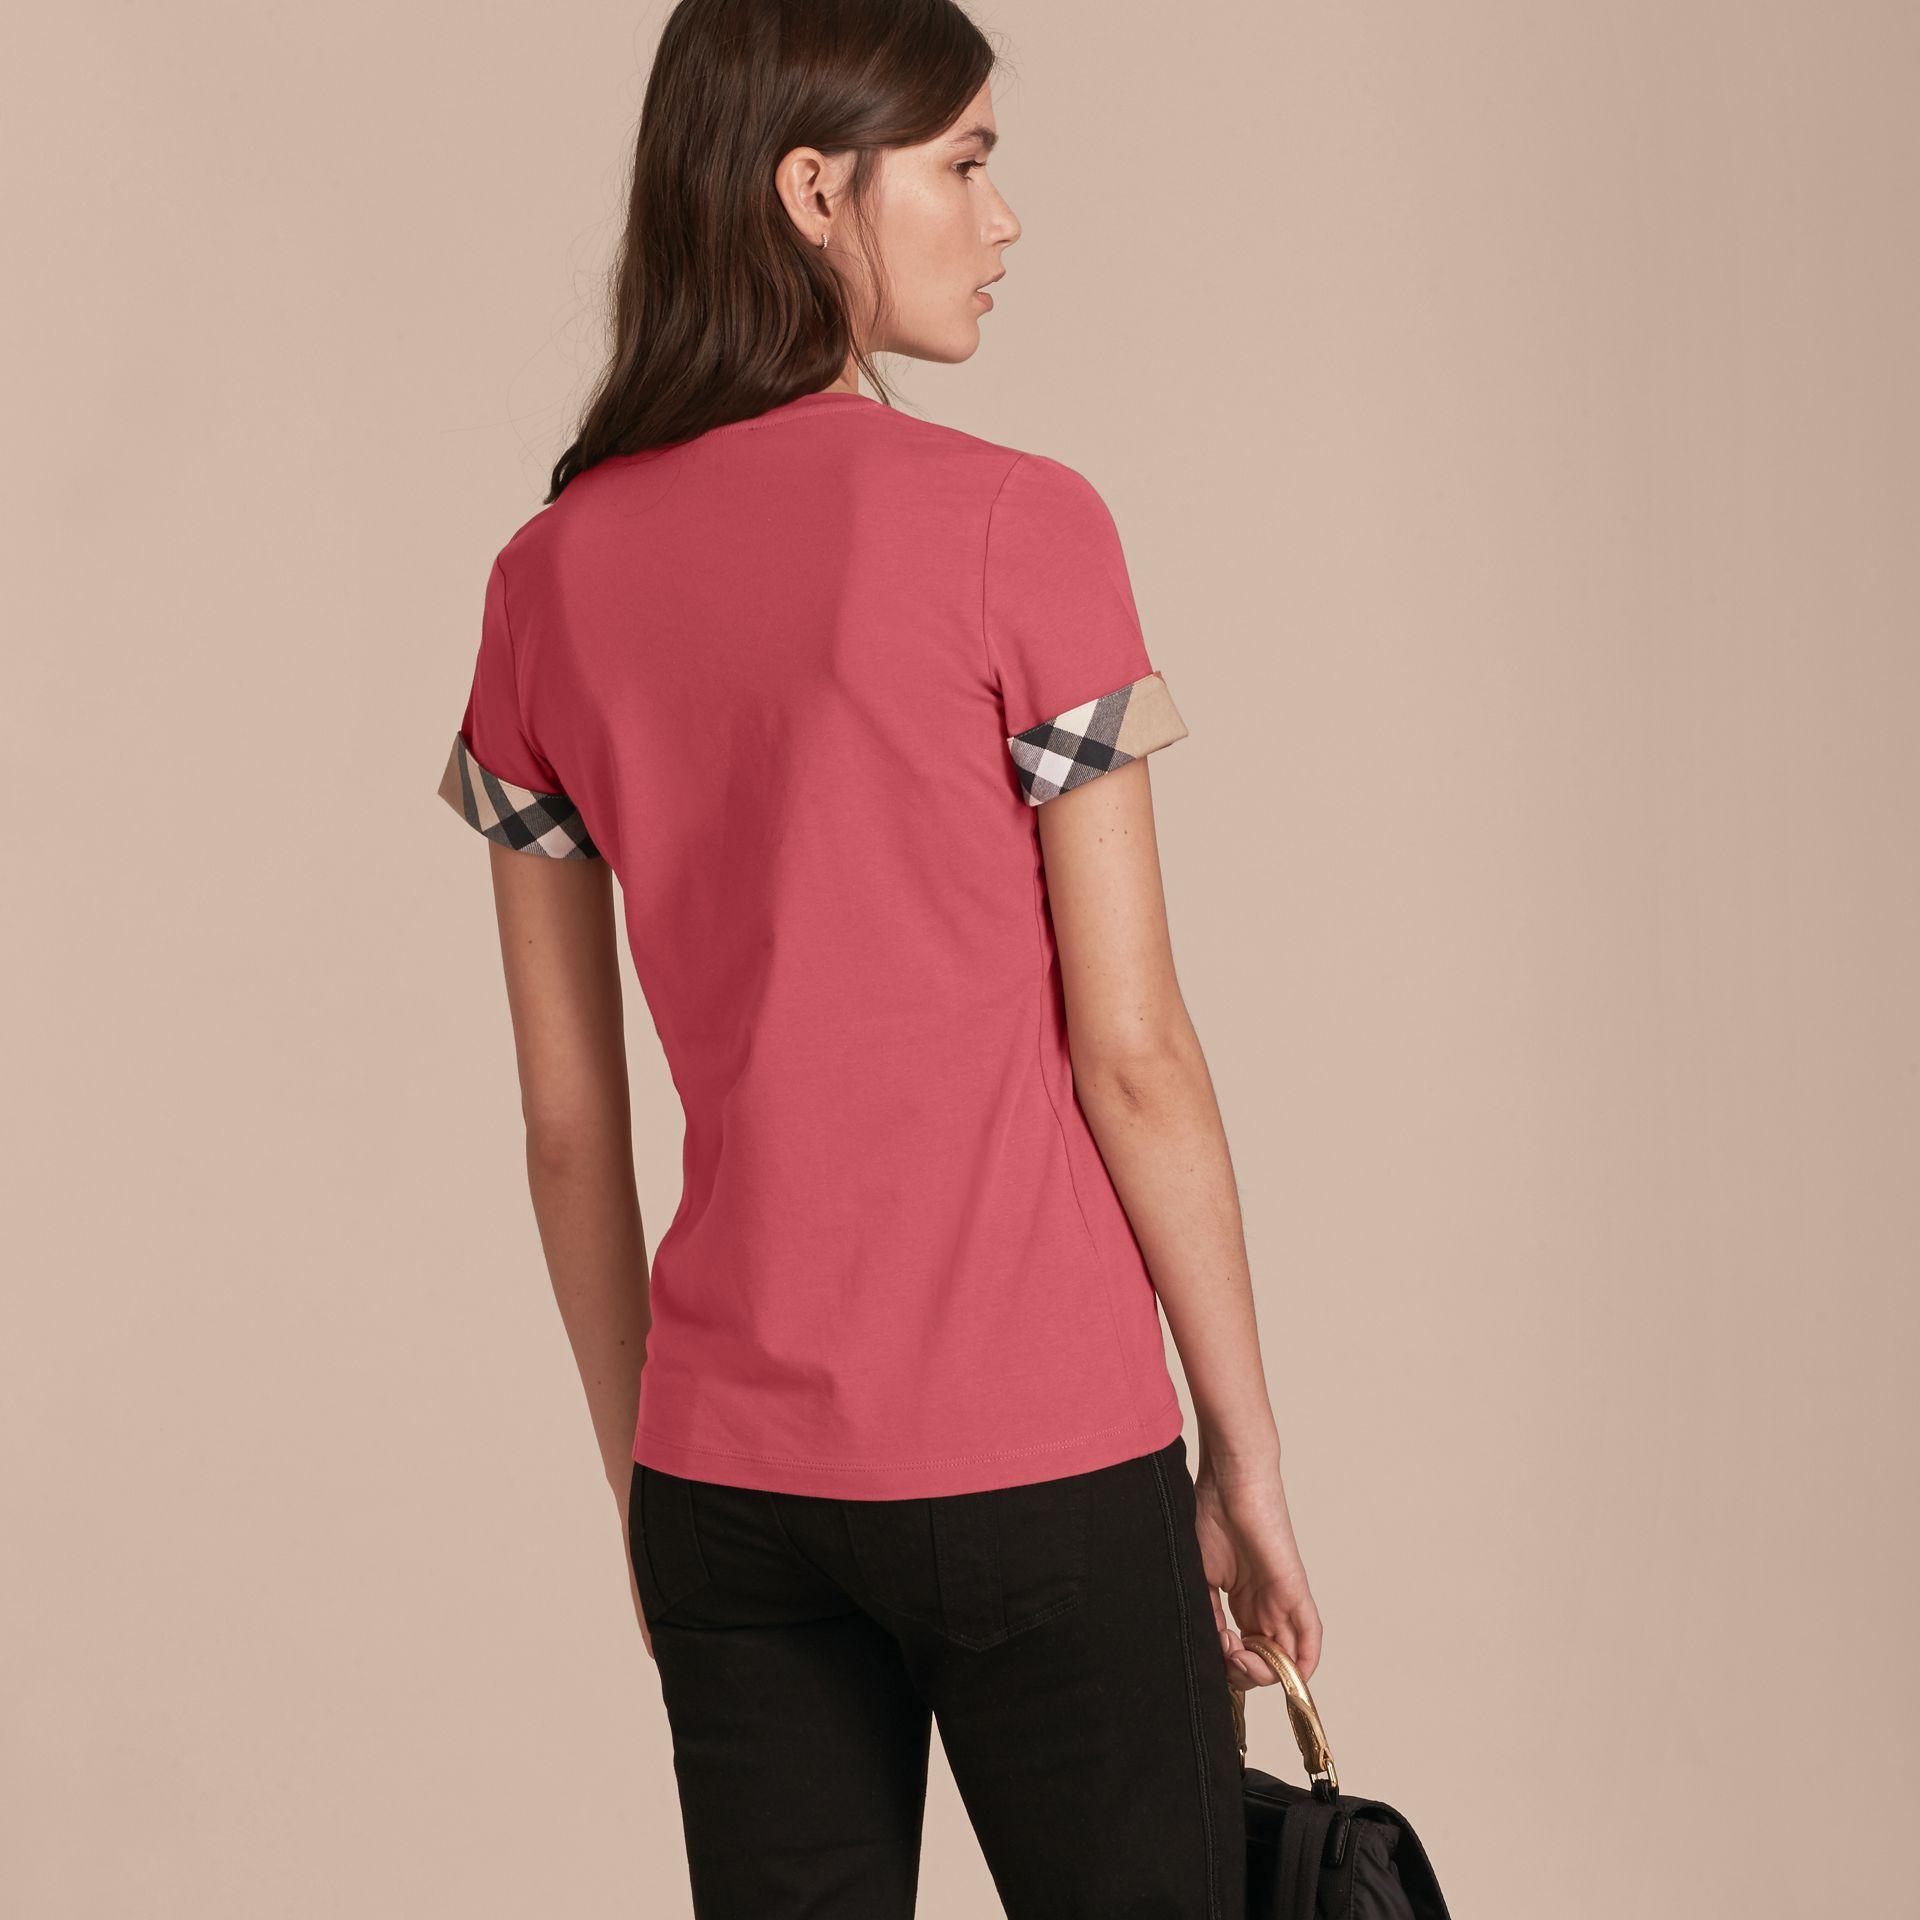 Pink azalea Check Trim Stretch Cotton T-shirt Pink Azalea - gallery image 3